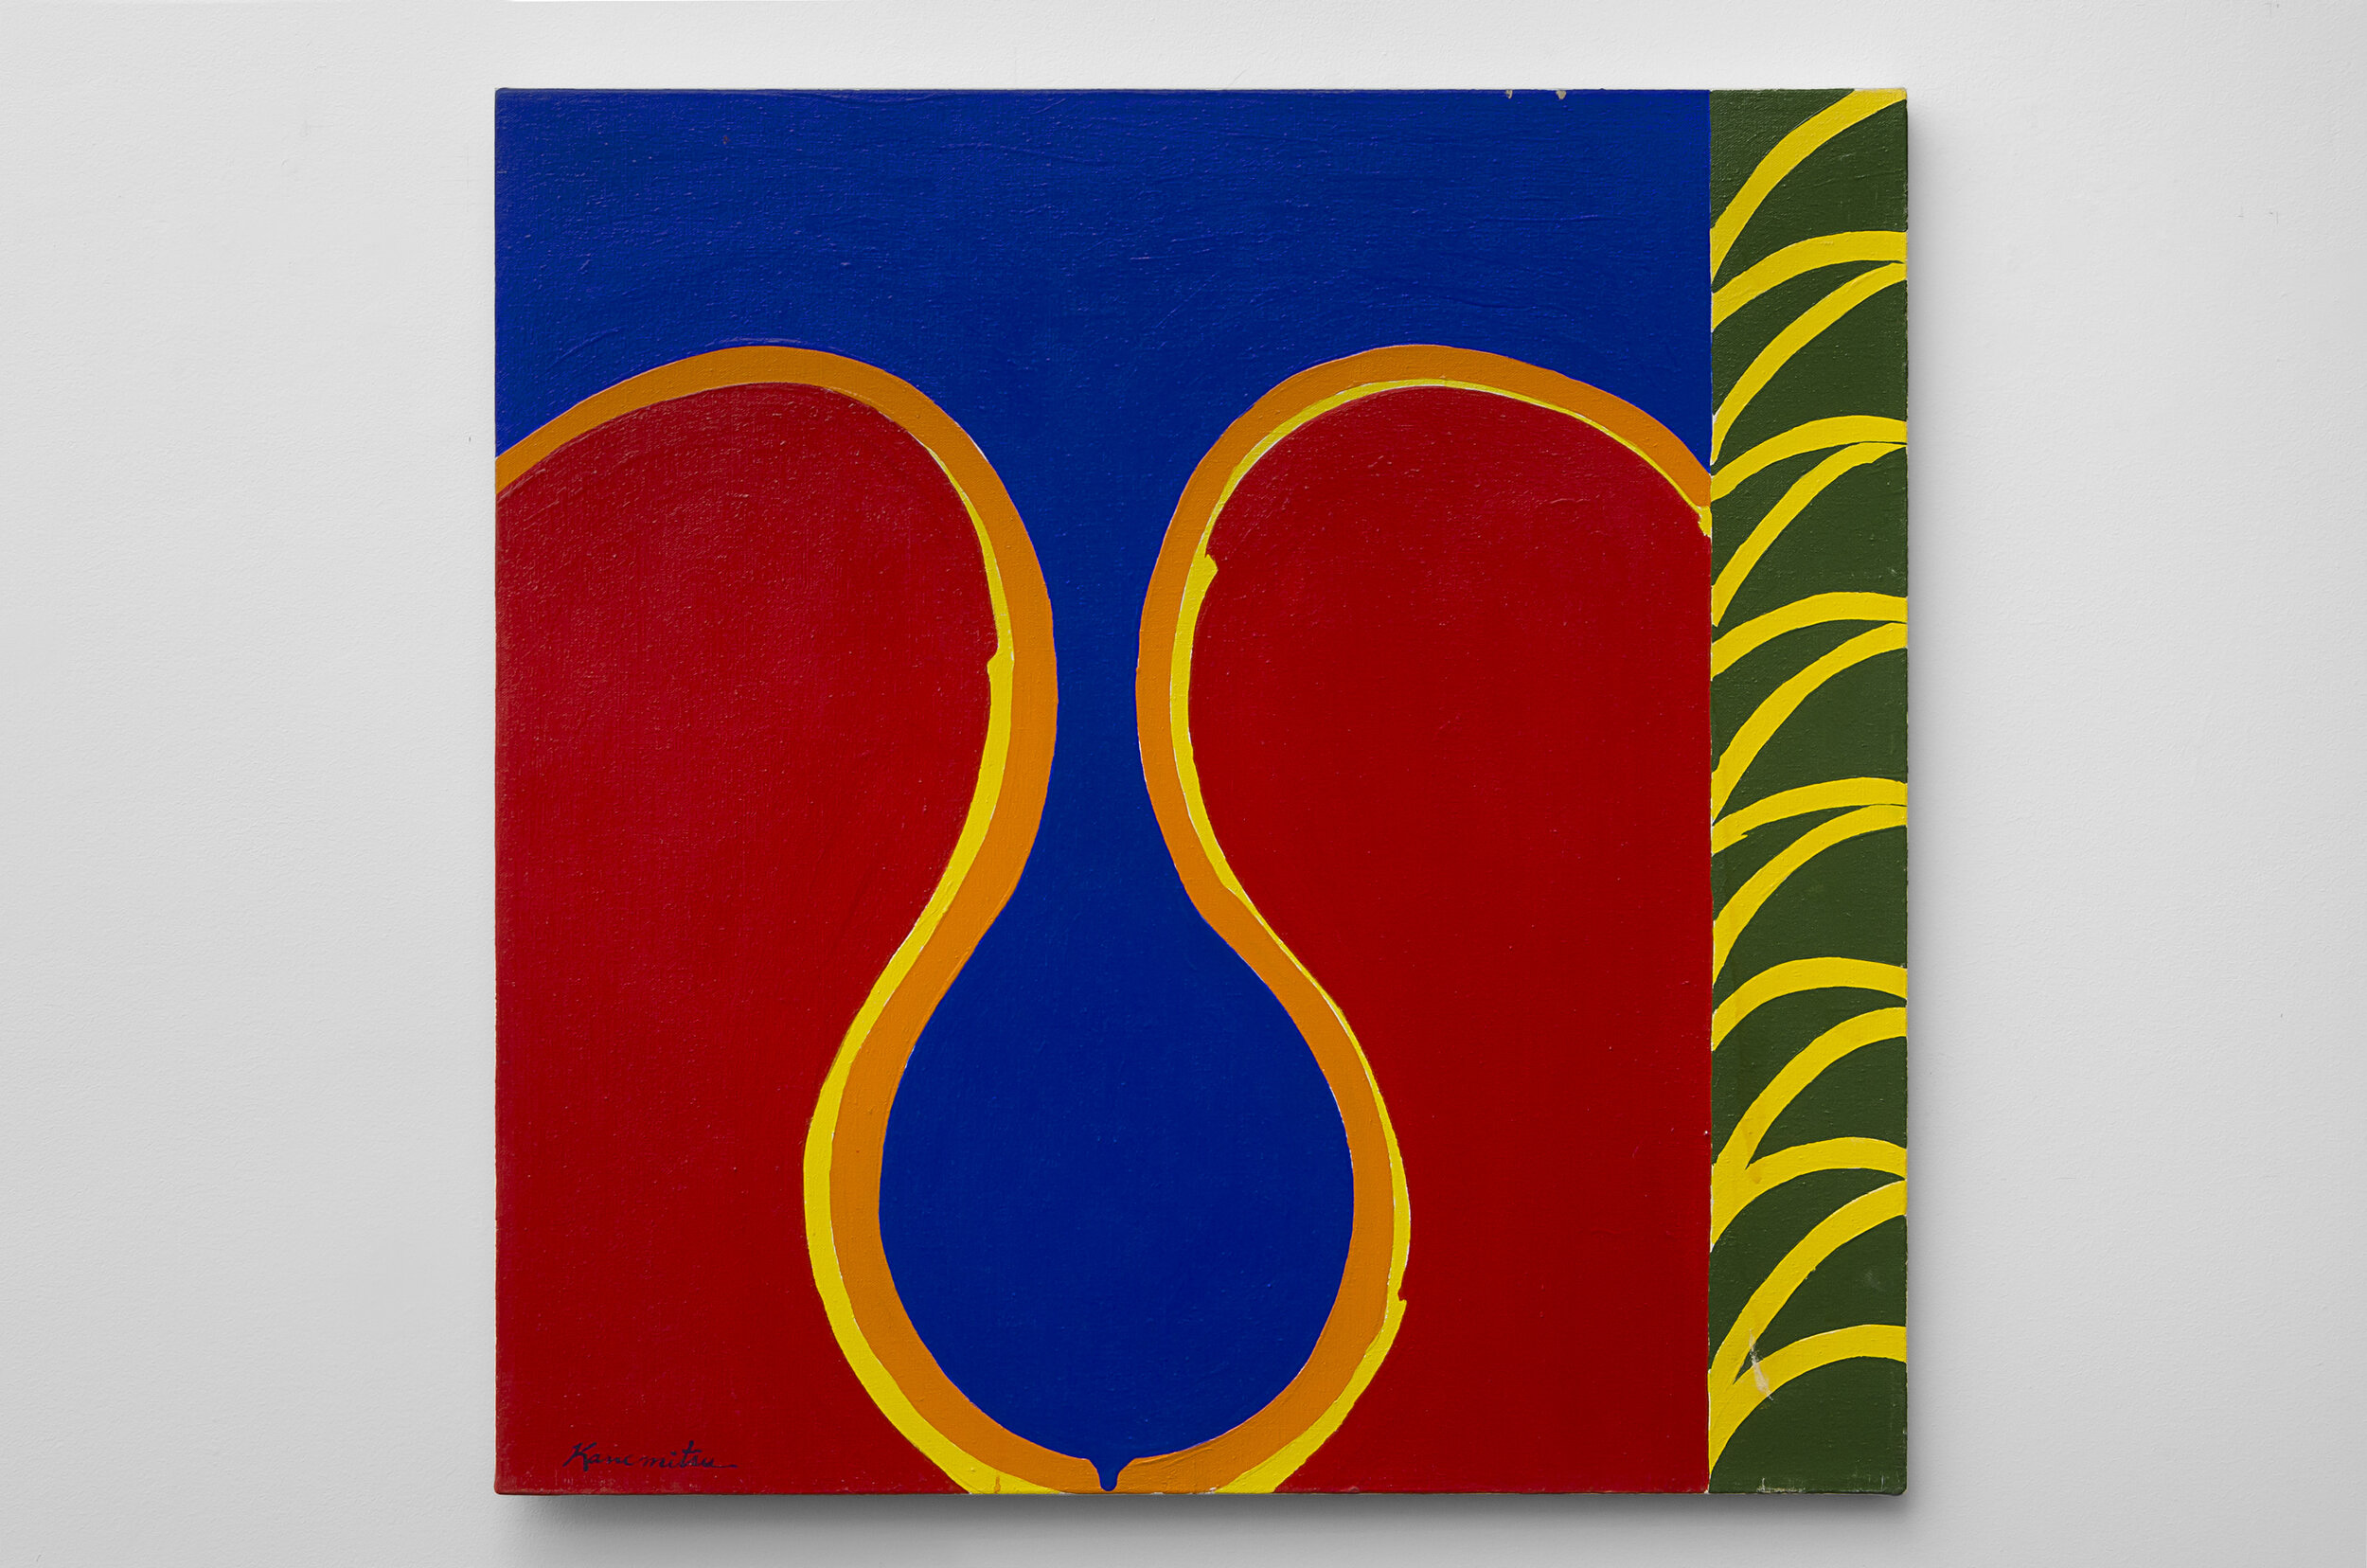 Untitled (A) , 1956 acrylic on canvas 28 x 28 inches; 71.1 x 71.1 centimeters